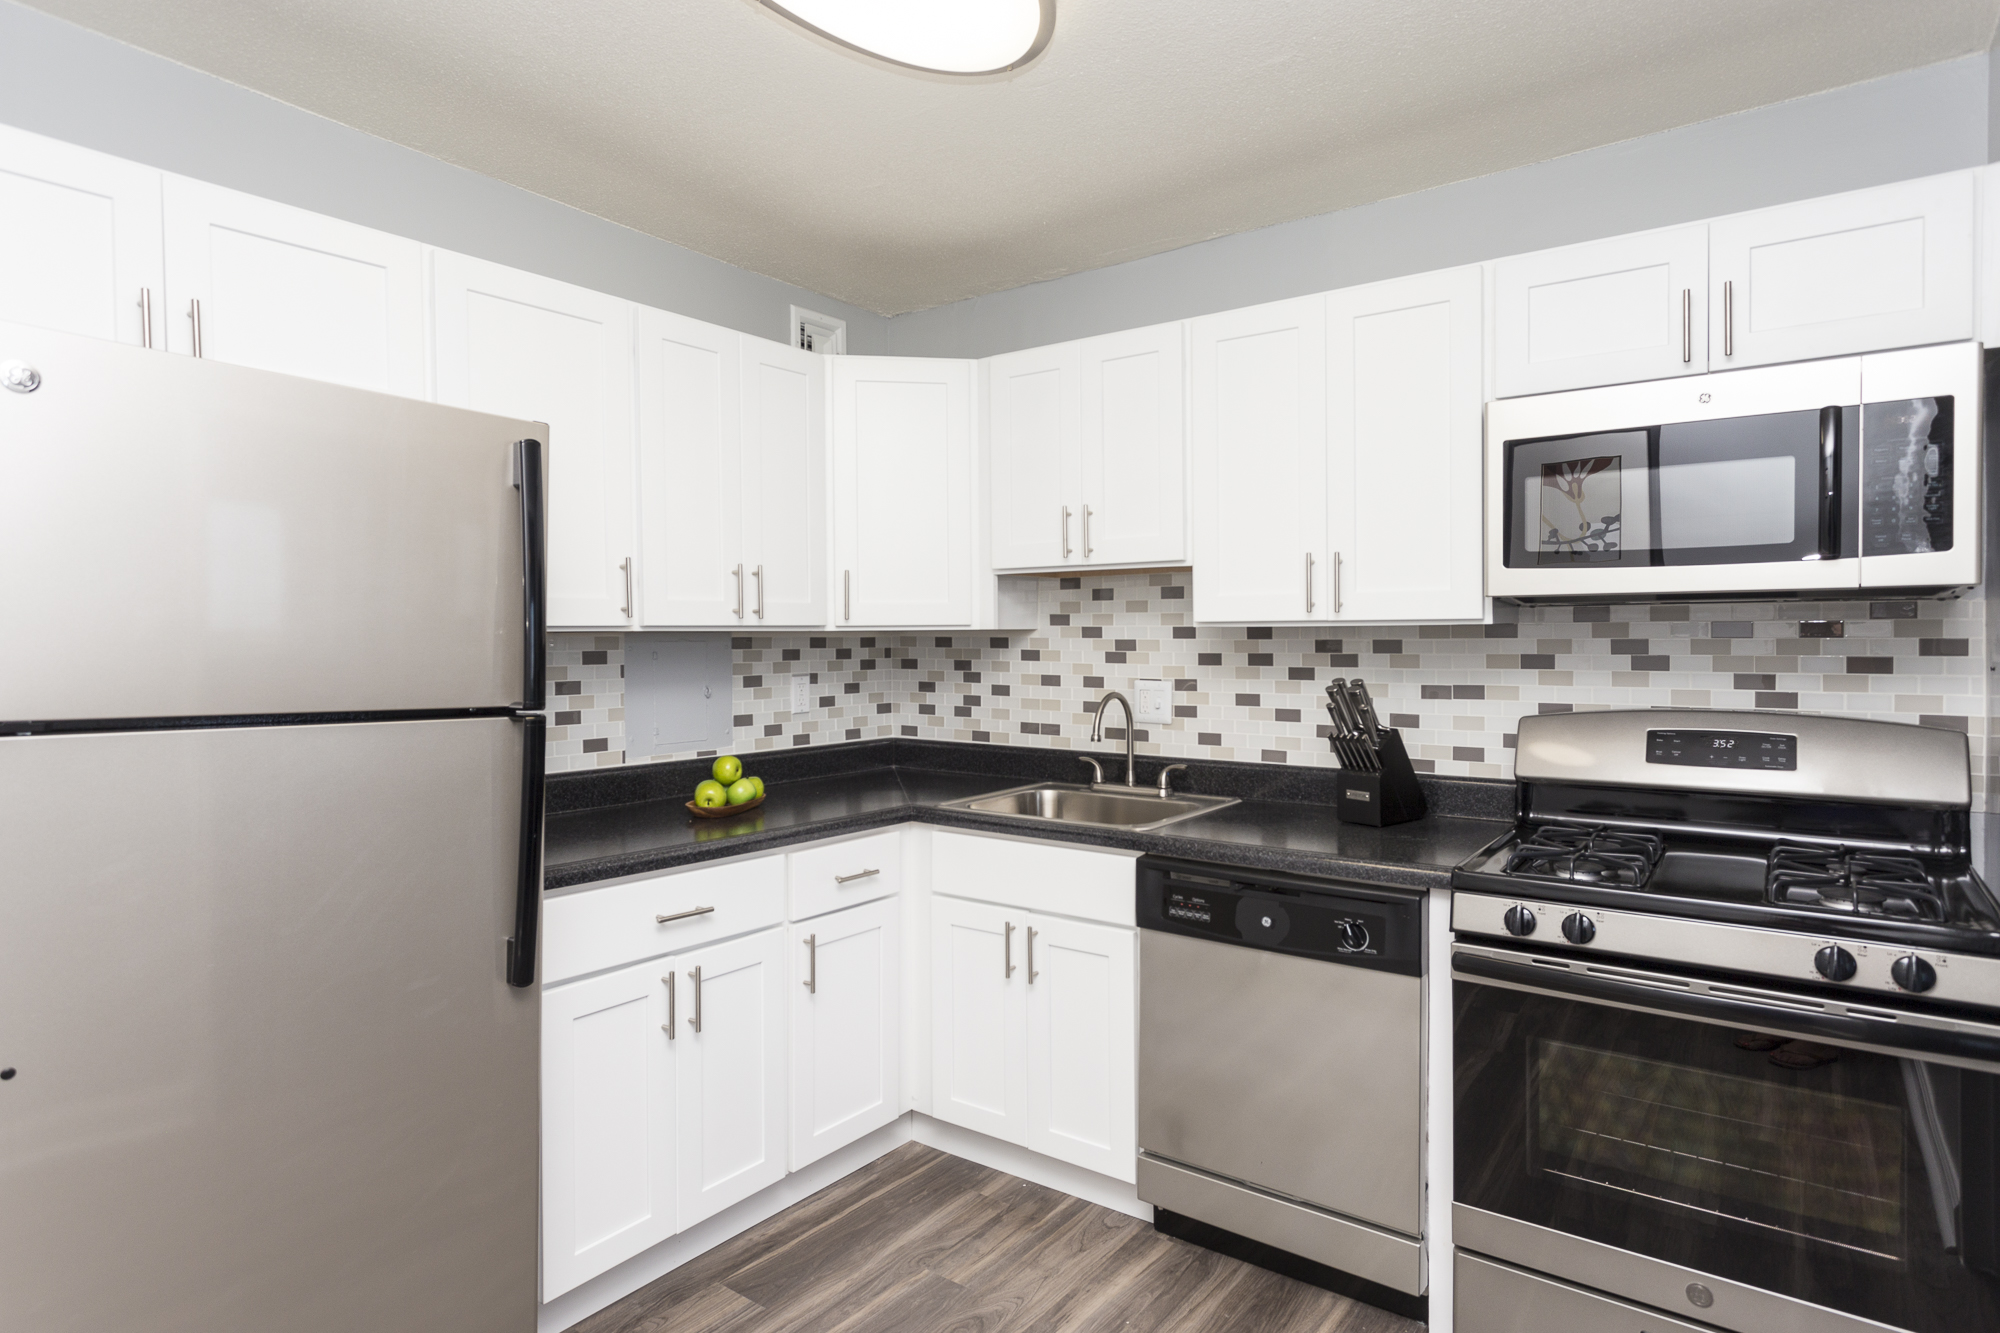 Grey backsplash in an updated kitchen at the Enclave Apartments